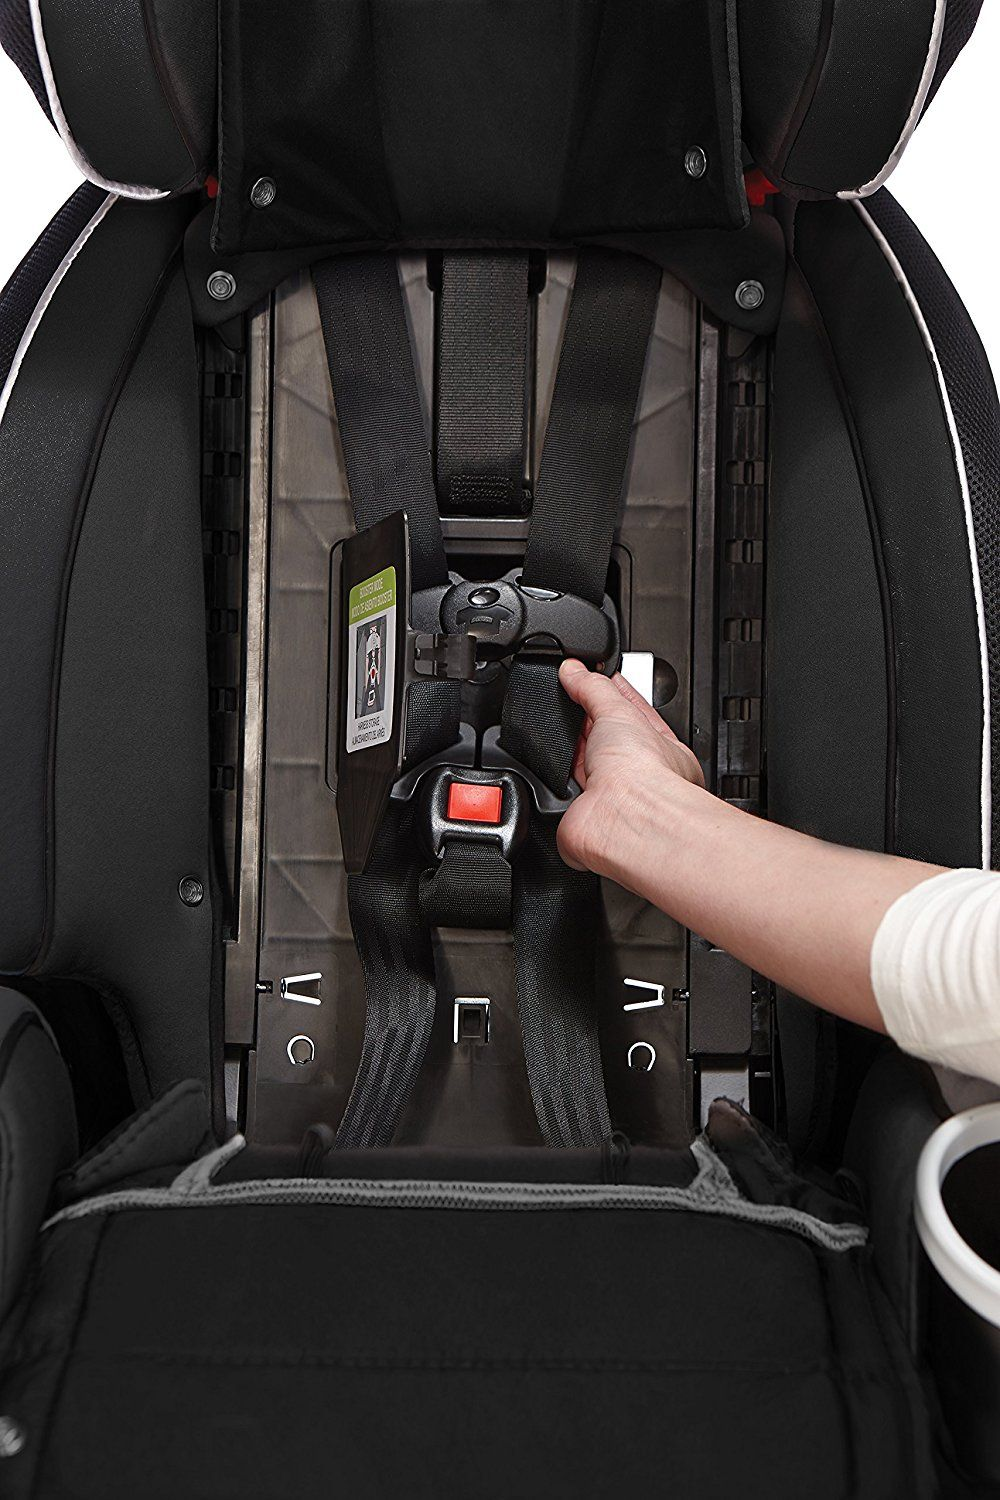 Award winning category for safety features car seats